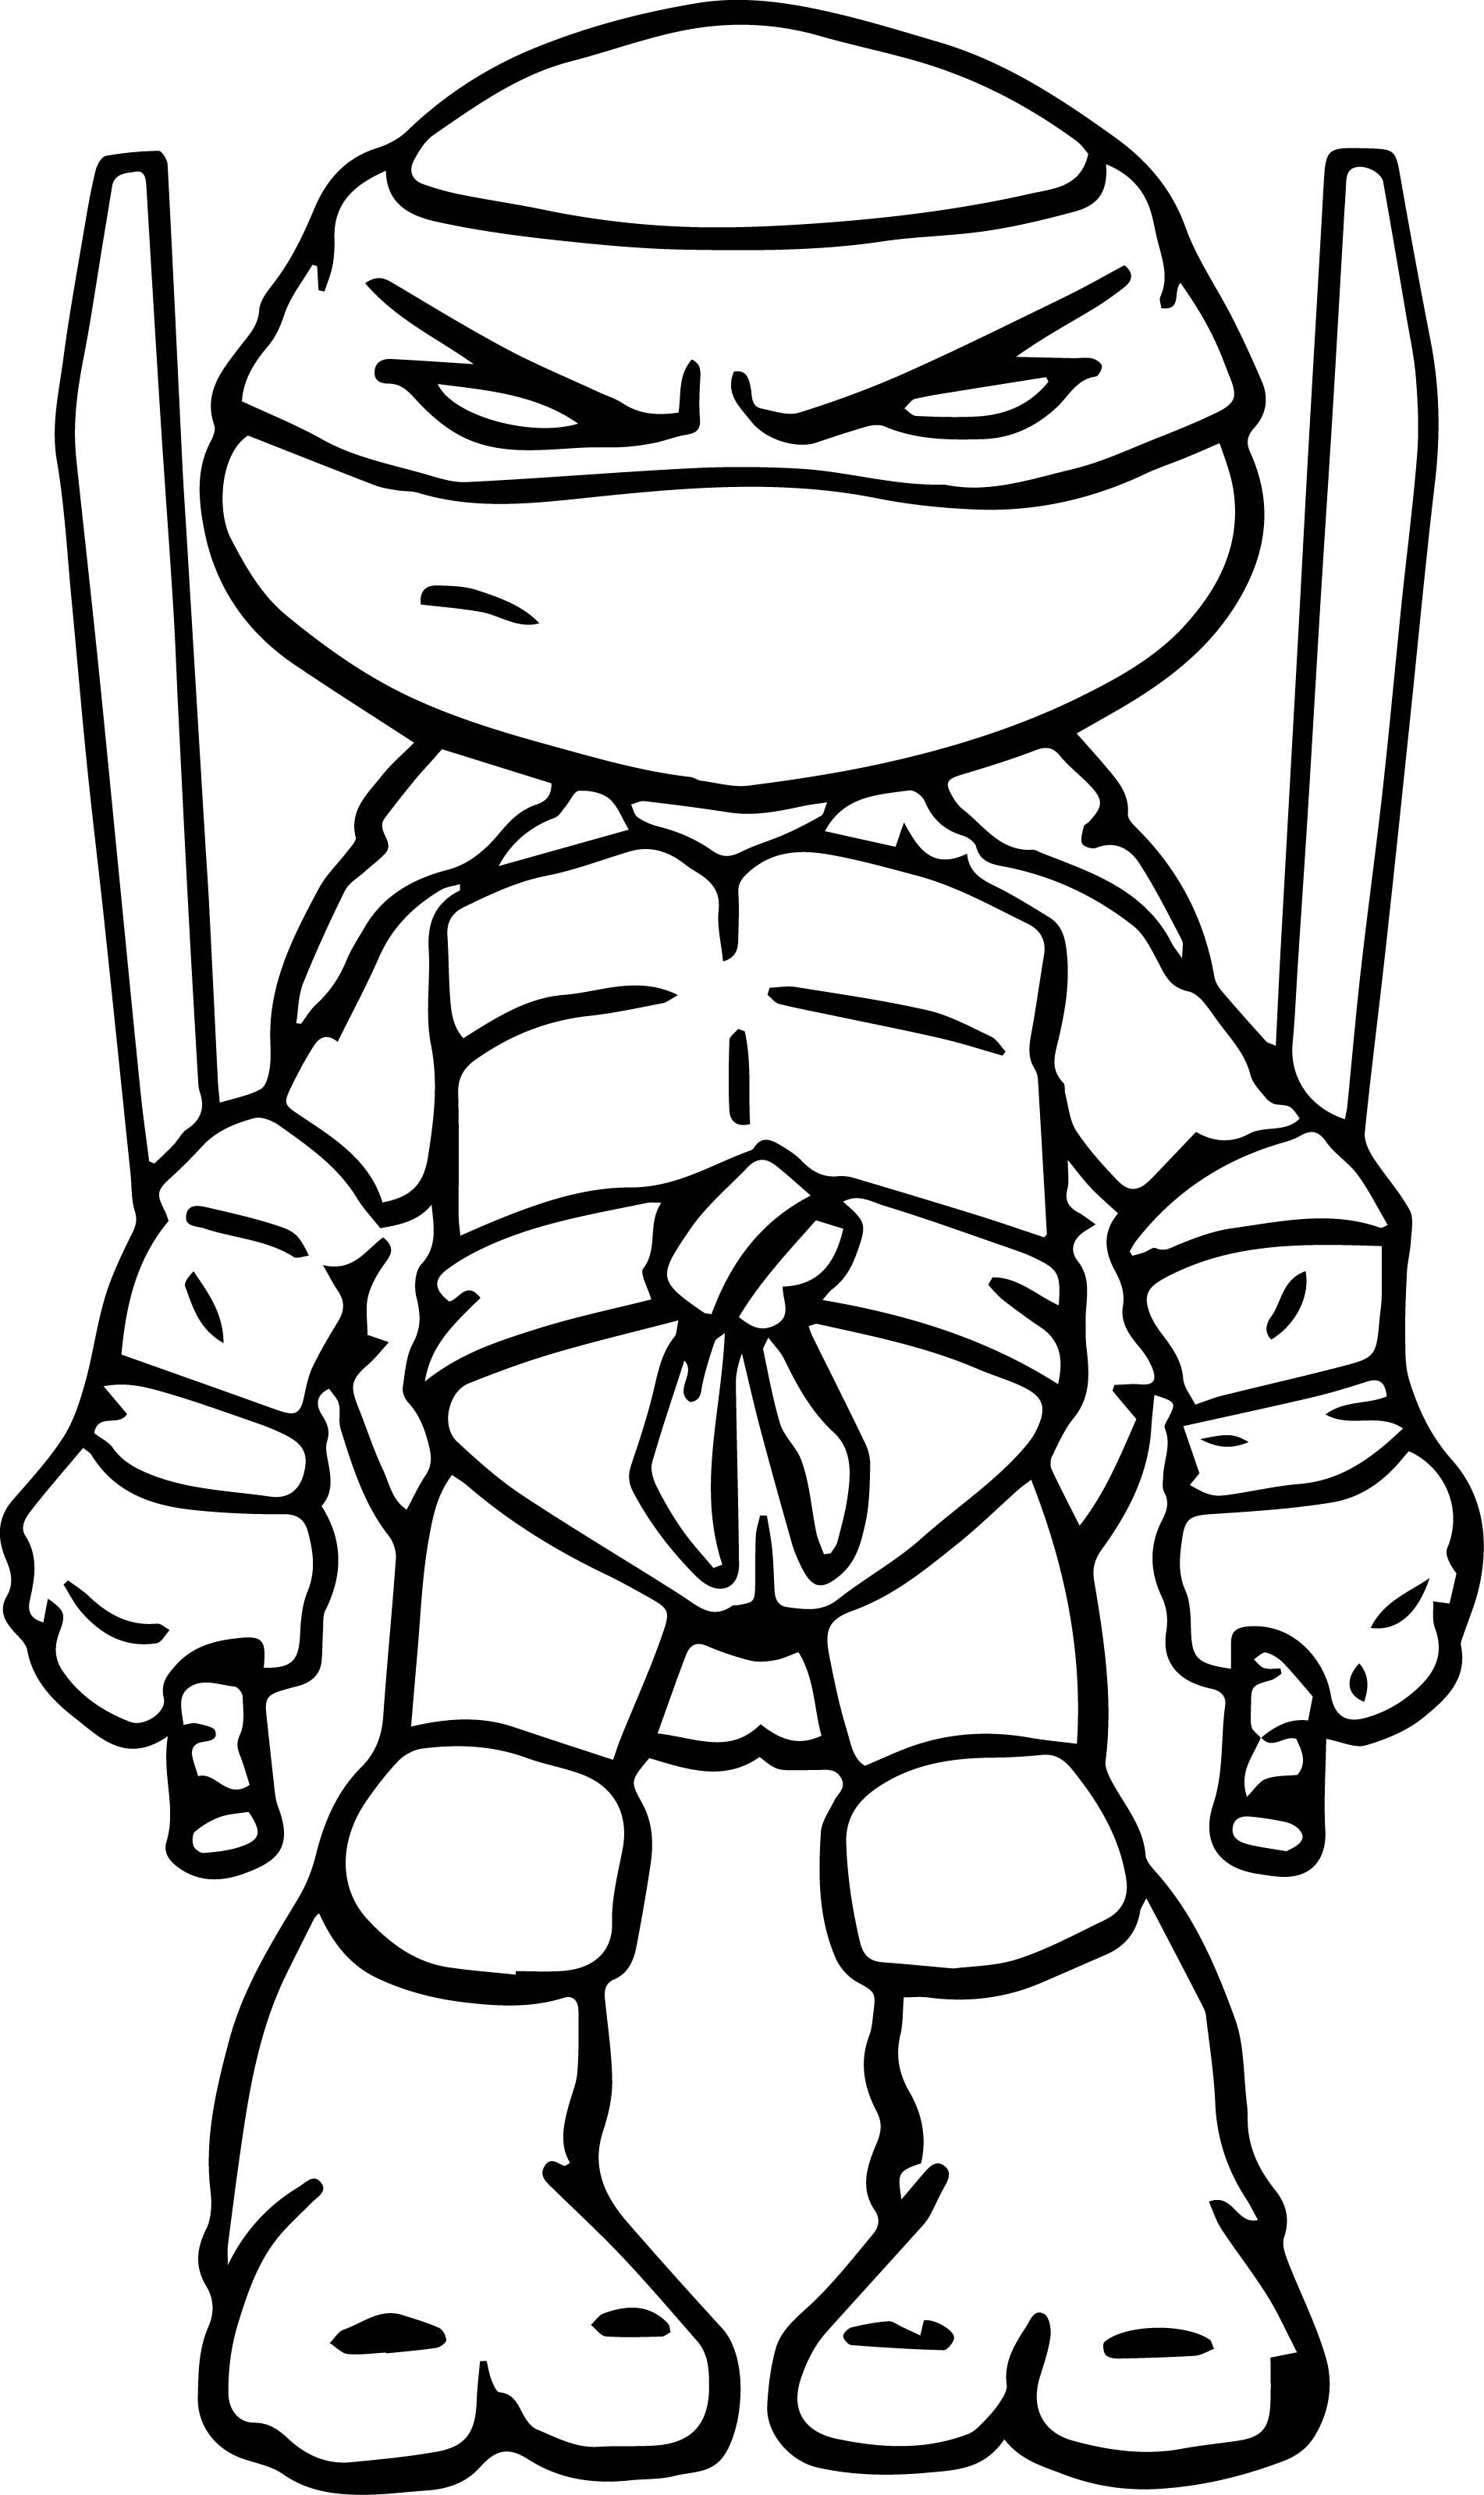 free ninja turtle coloring pages - photo#12